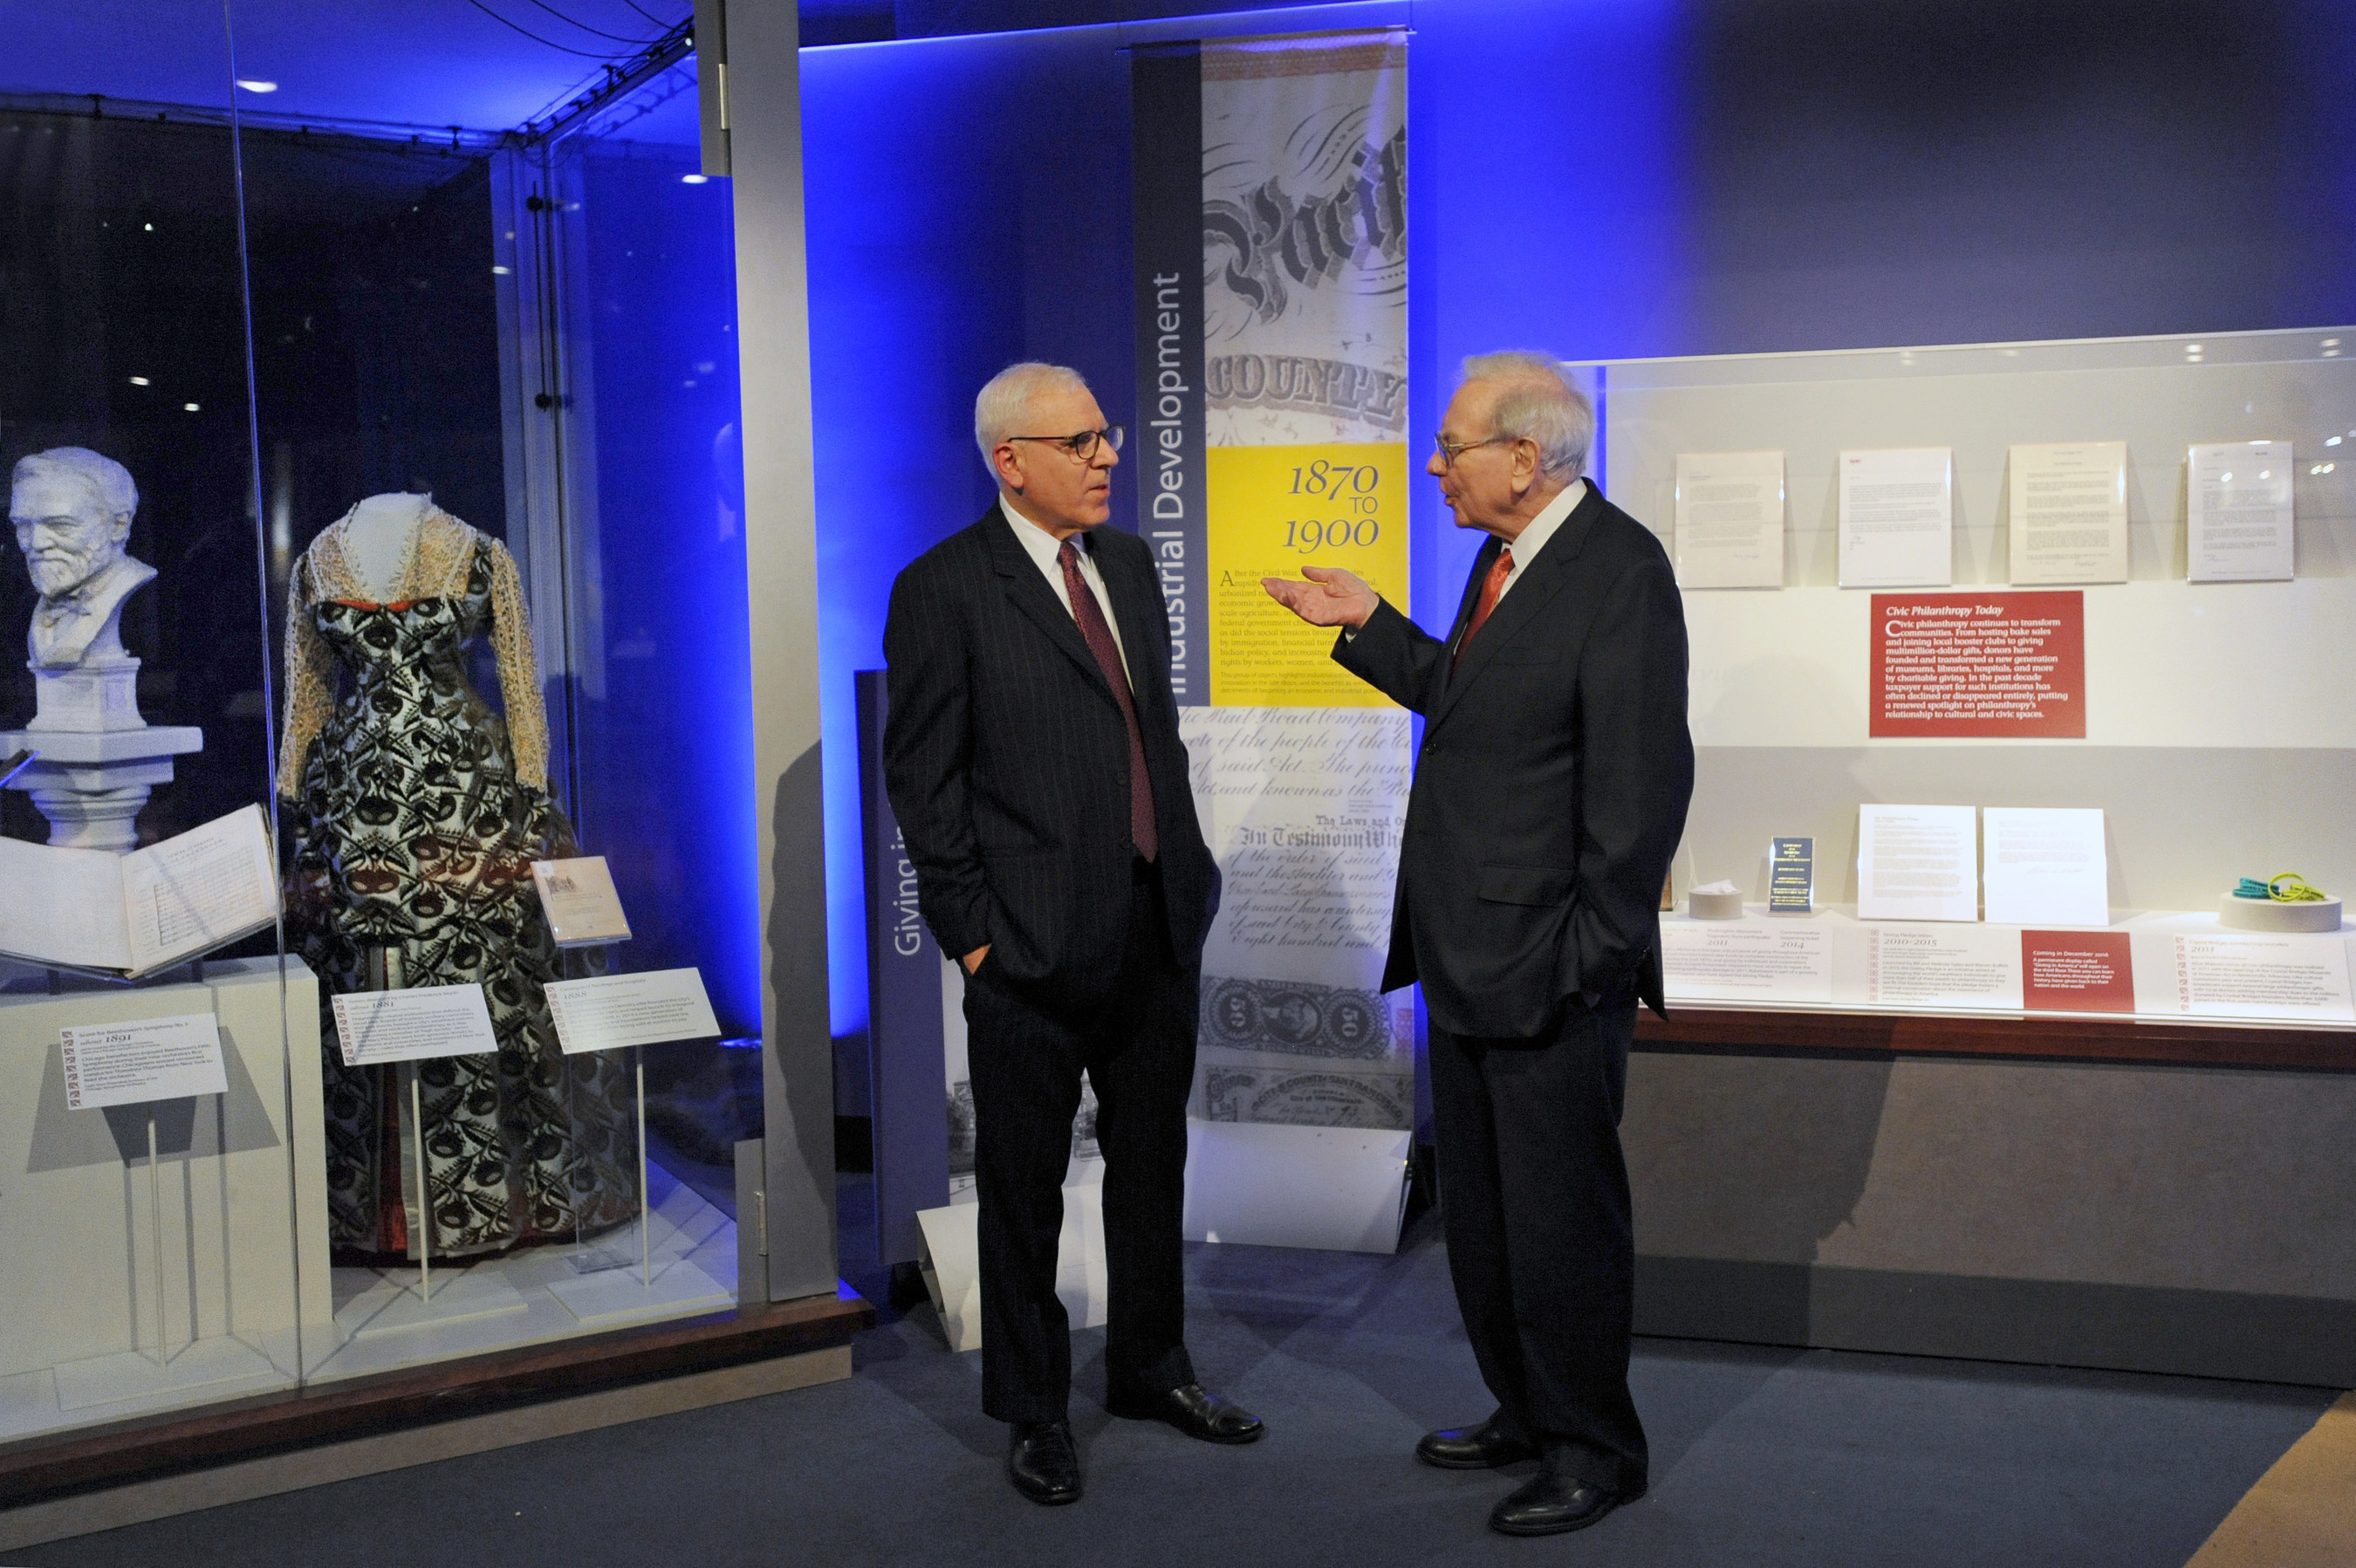 "David Rubenstein, co-CEO, The Carlyle Group and Chair, Smithsonian Board of Regents and Warren Buffett, chairman and CEO, Berkshire Hathaway Inc. preview the ""Giving in America' display at the National Museum of American History. The cases, which open to the public Dec. 1, examine philanthropy in two American eras, the Gilded Age and today."